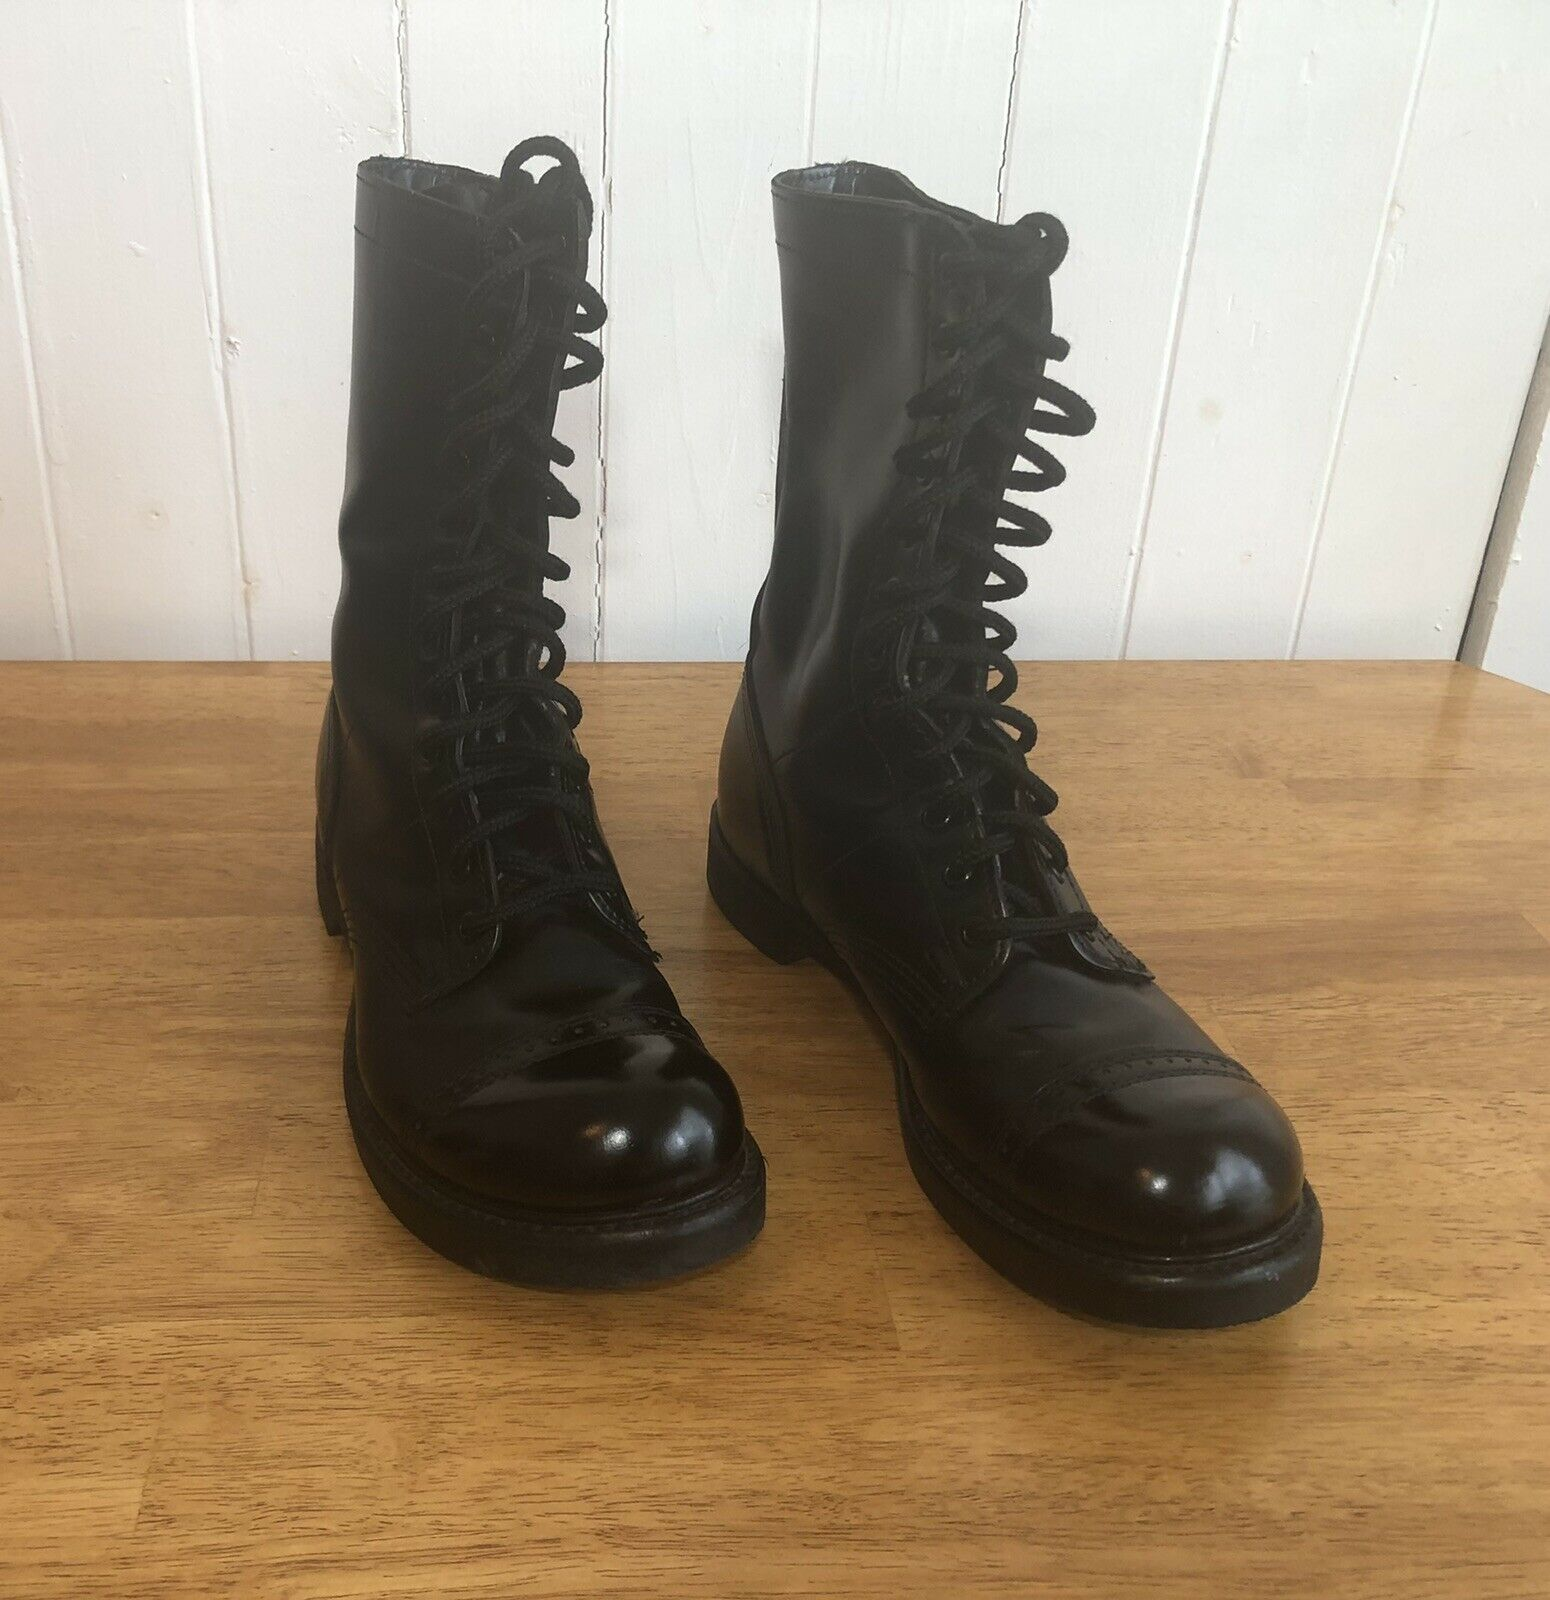 975 Paratrooper Leather Boots Sz8.5 Men's HH Brand USA Made